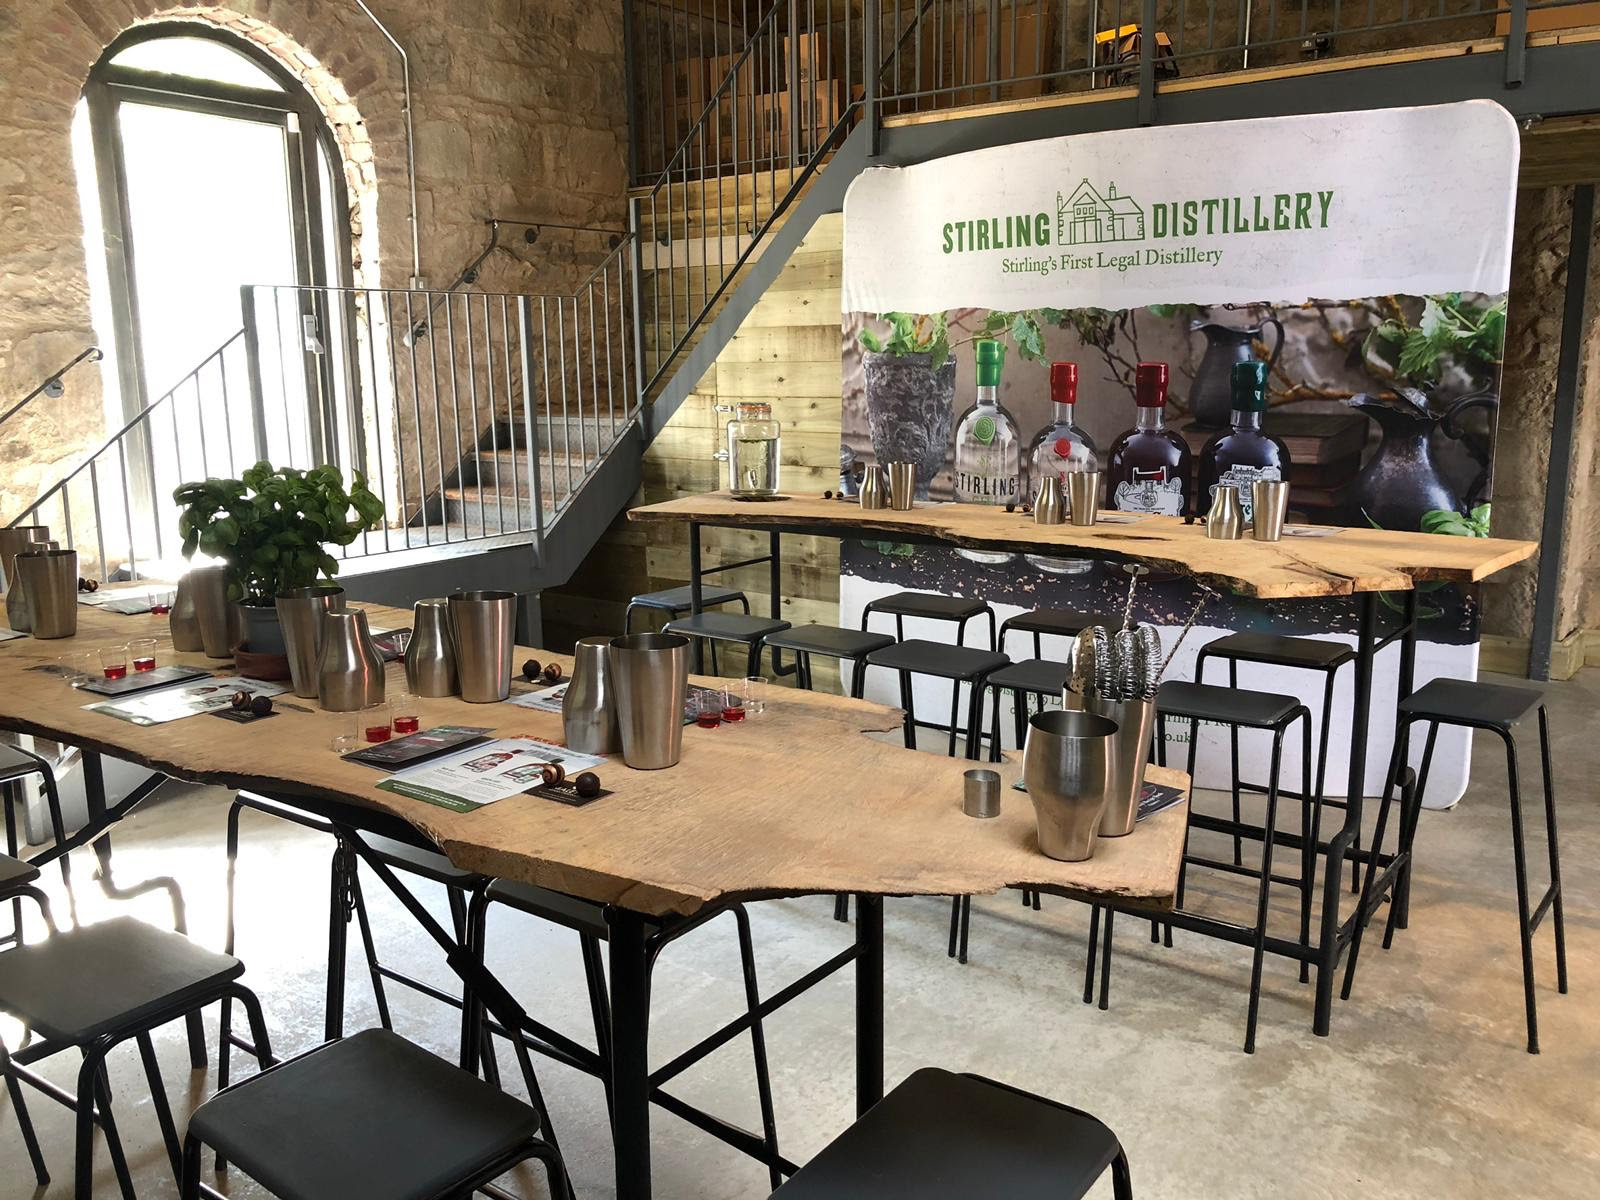 Stirling Gin Distillery Opens Its Doors. photo